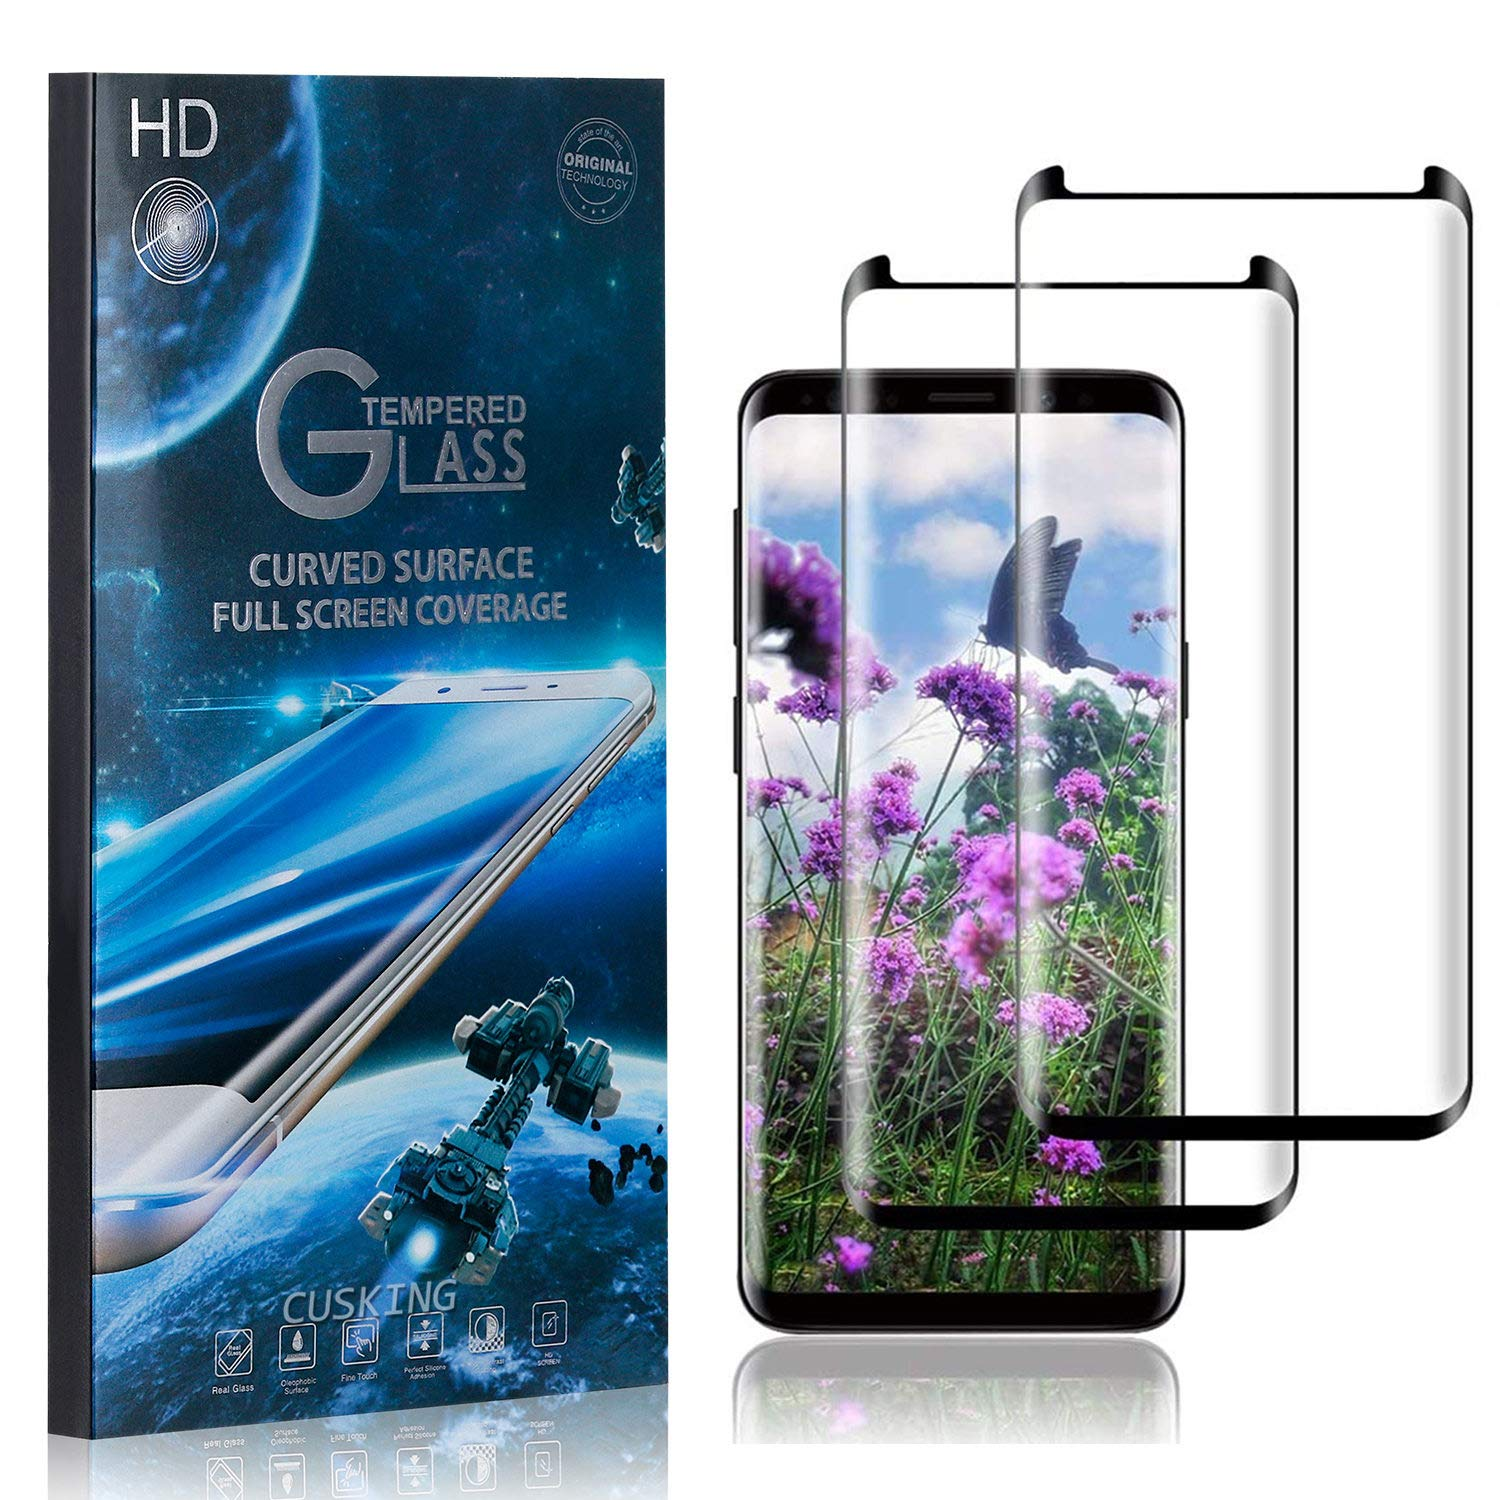 CUSKING Screen Protector for Galaxy S9 Bubble Free HD Tempered Glass Screen Protector for Samsung Galaxy S9 9H Hardness 2 Pack Shock Absorbent